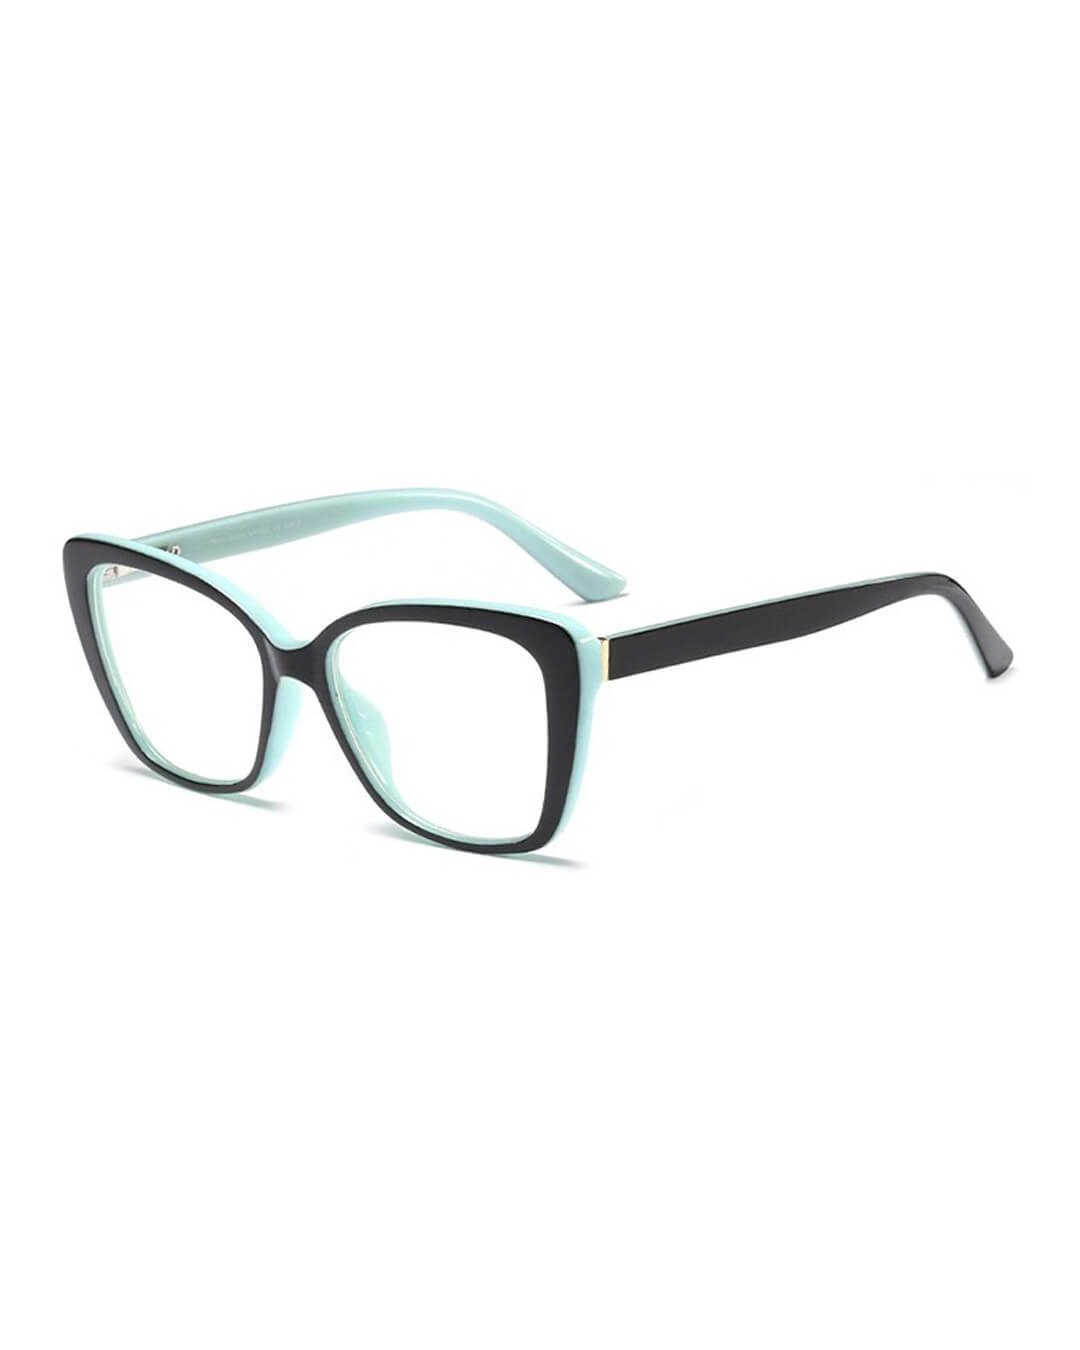 Tiffany-Opticals---Blue-2